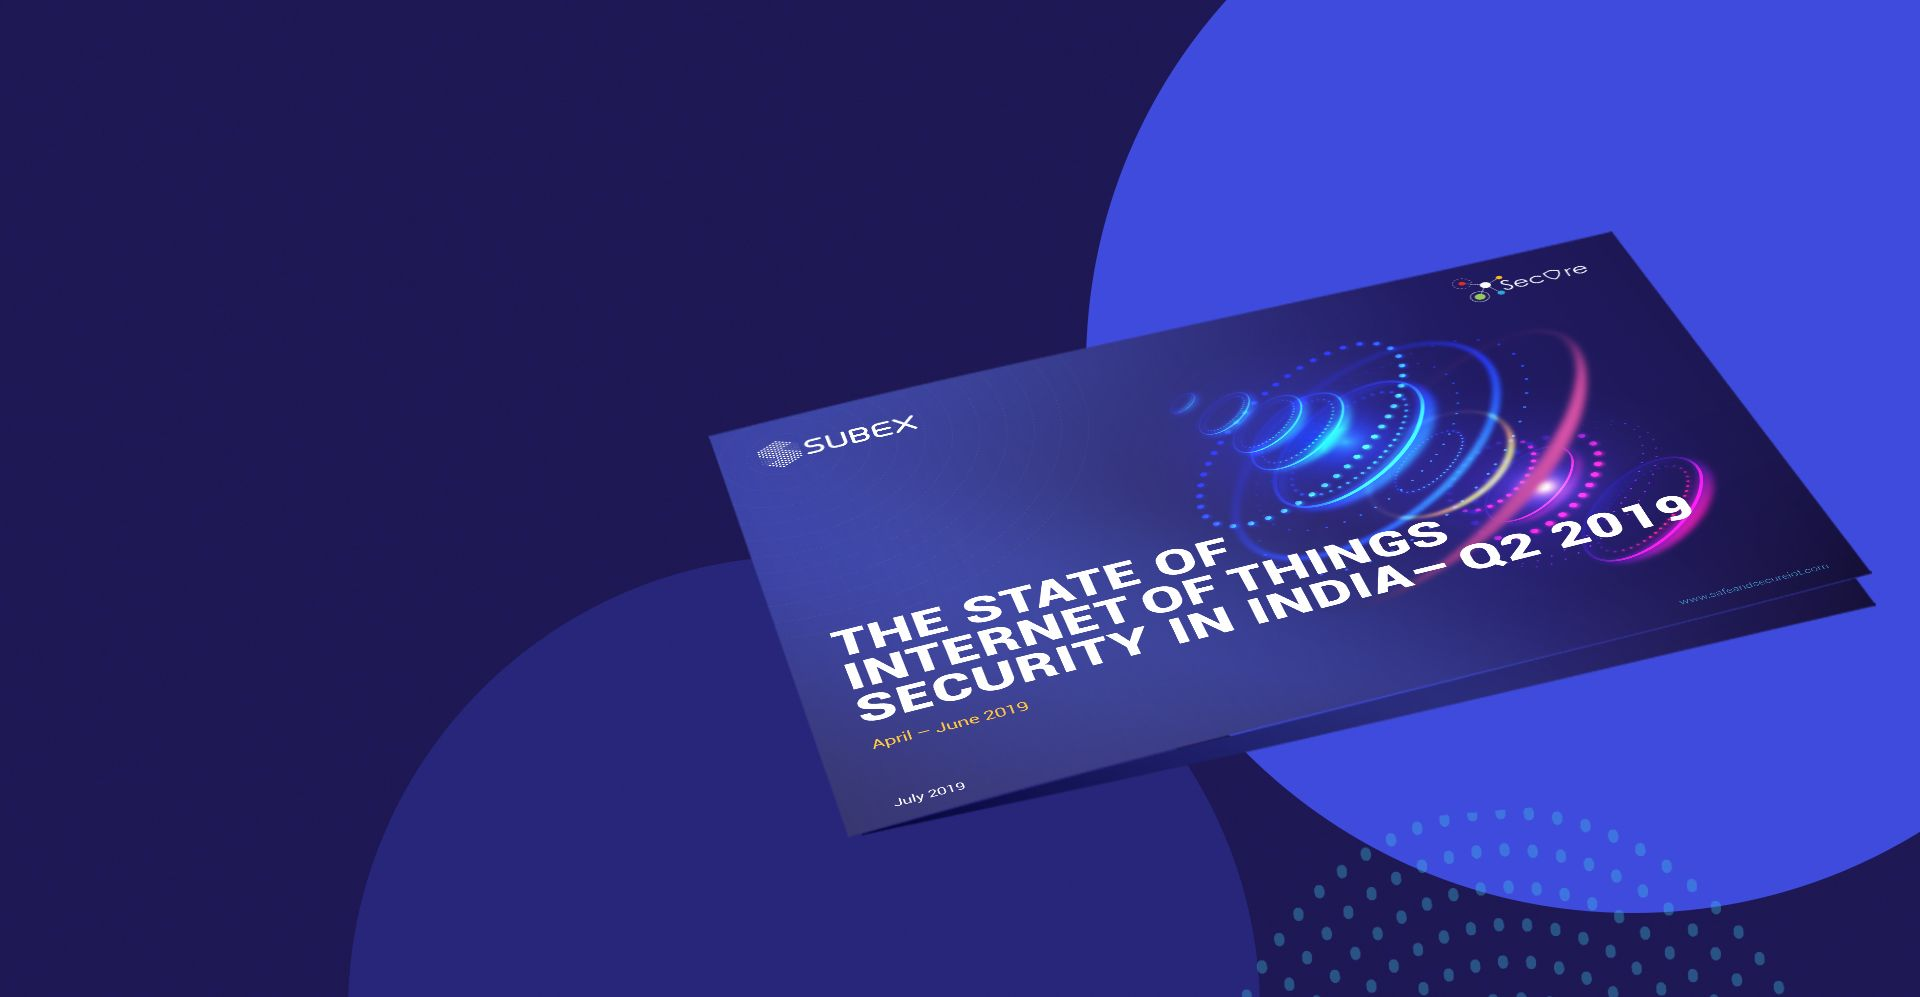 The State Of Internet Of Things Security In India-Q2 2019